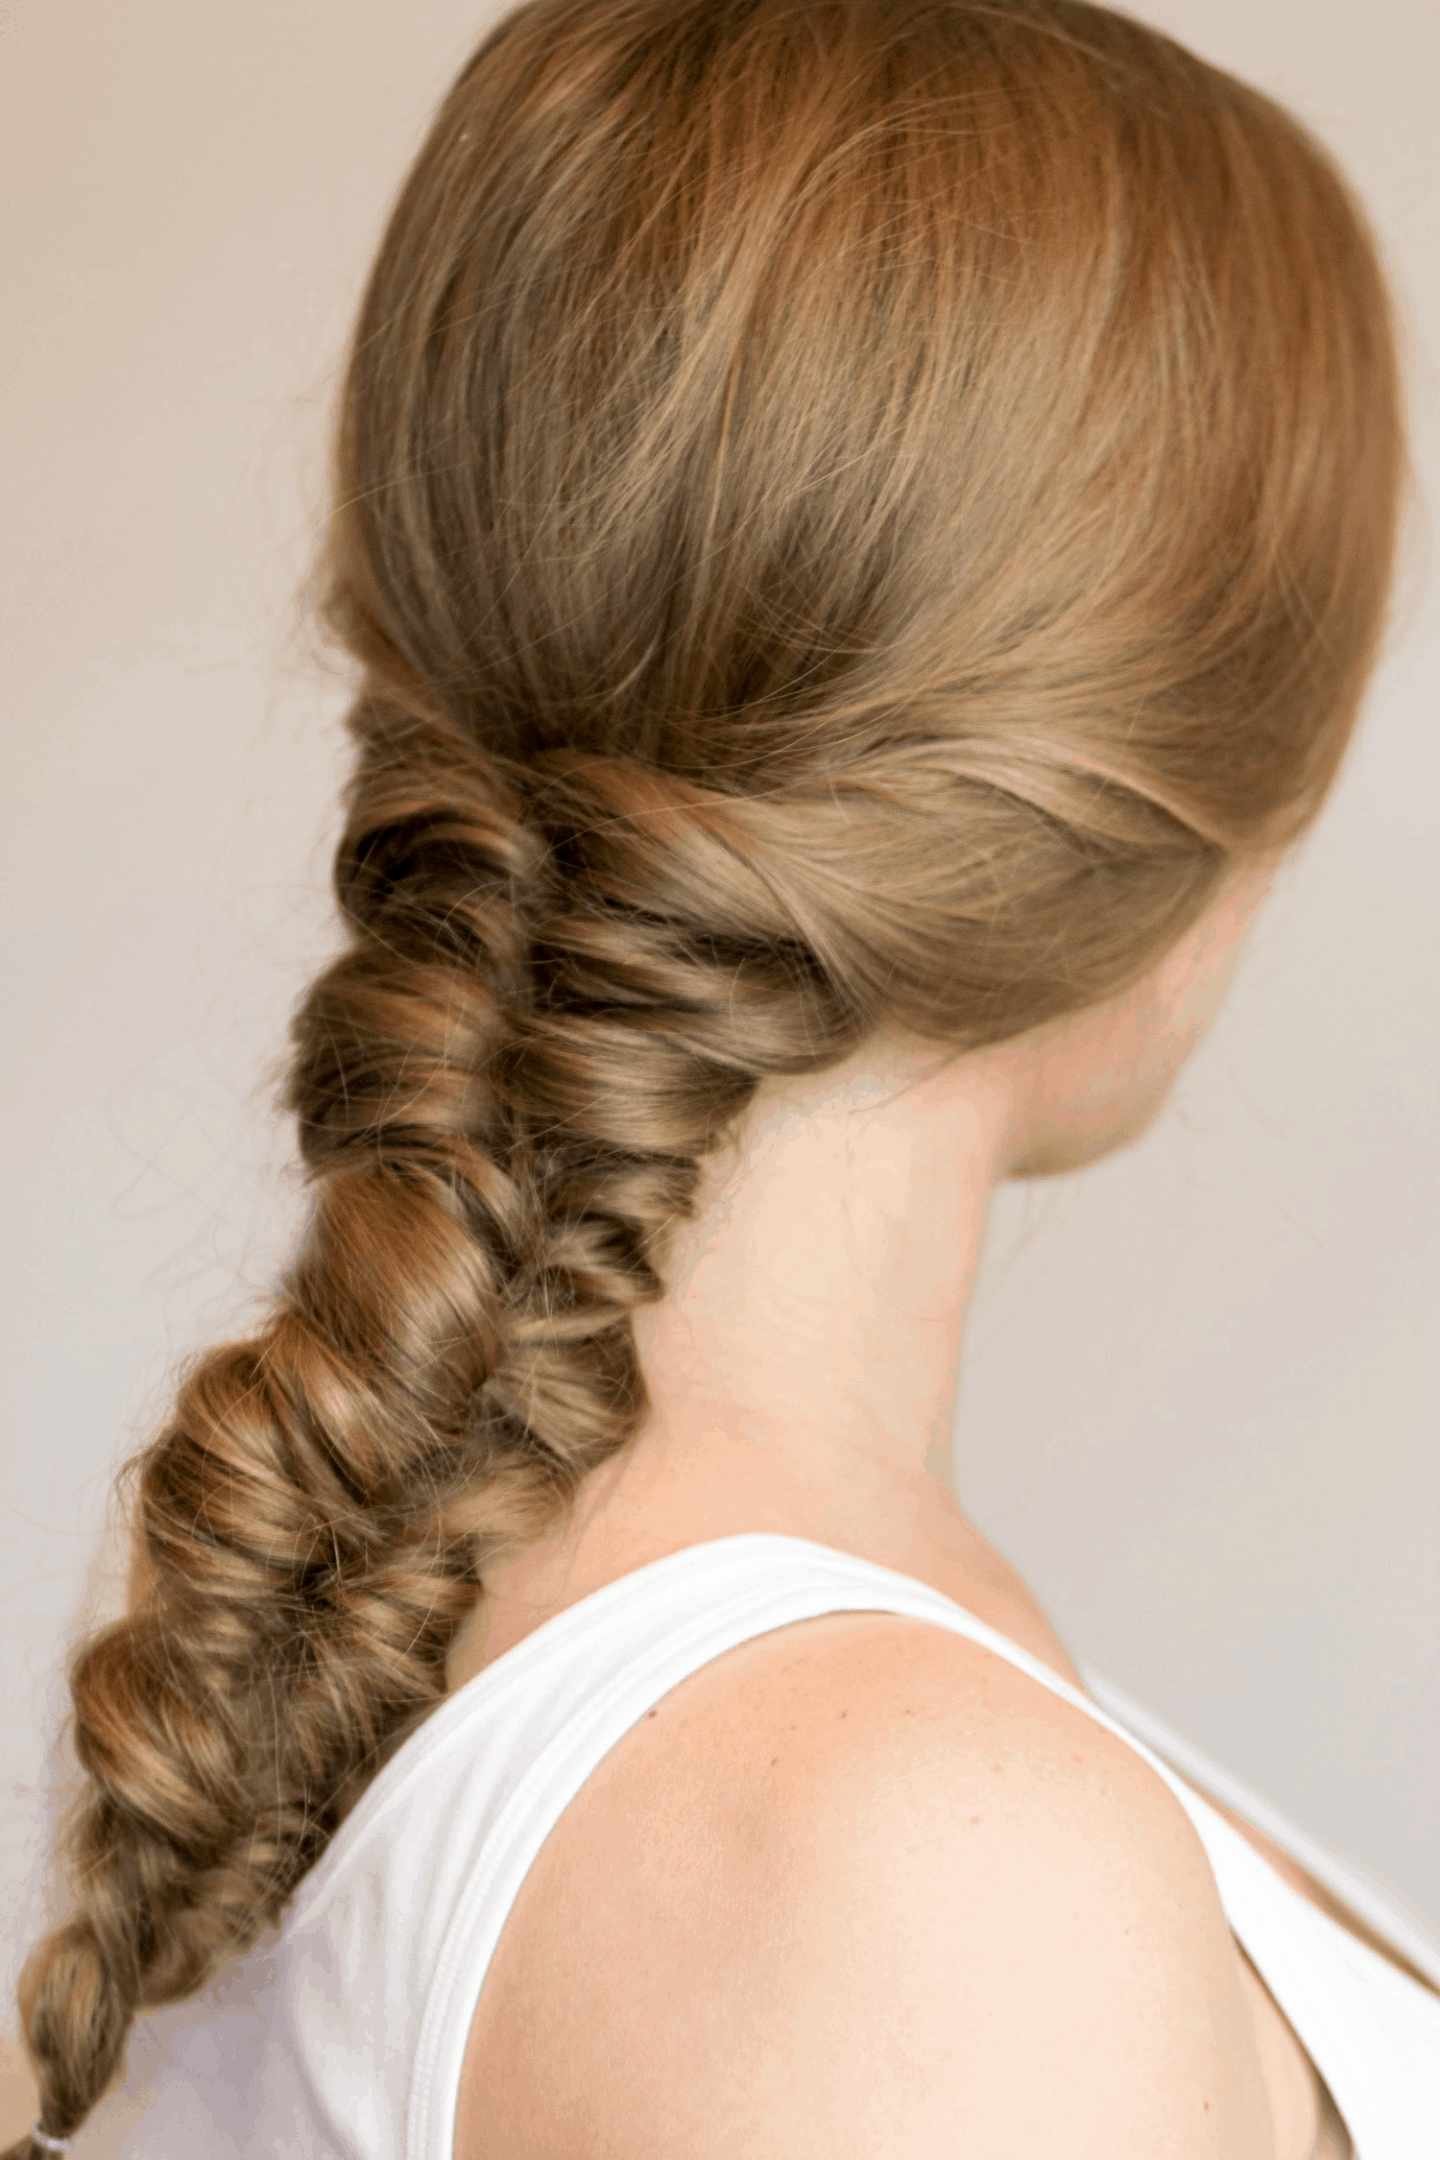 Messy faux fishtail braid that doesn't require any braiding | 4 Easy heatless hairstyles for long hair that don't require braiding! Learn how to create a faux braided ponytail, messy faux fishtail braid, twisted half-up, and messy braided bun in these easy hair tutorial by Orlando, Florida beauty blogger Ashley Brooke Nicholas! #MyHCLook sponsored by Hair Cuttery! | easy hairstyles, no-heat hairstyle, faux braids, faux braid tutorial, how to braid your hair